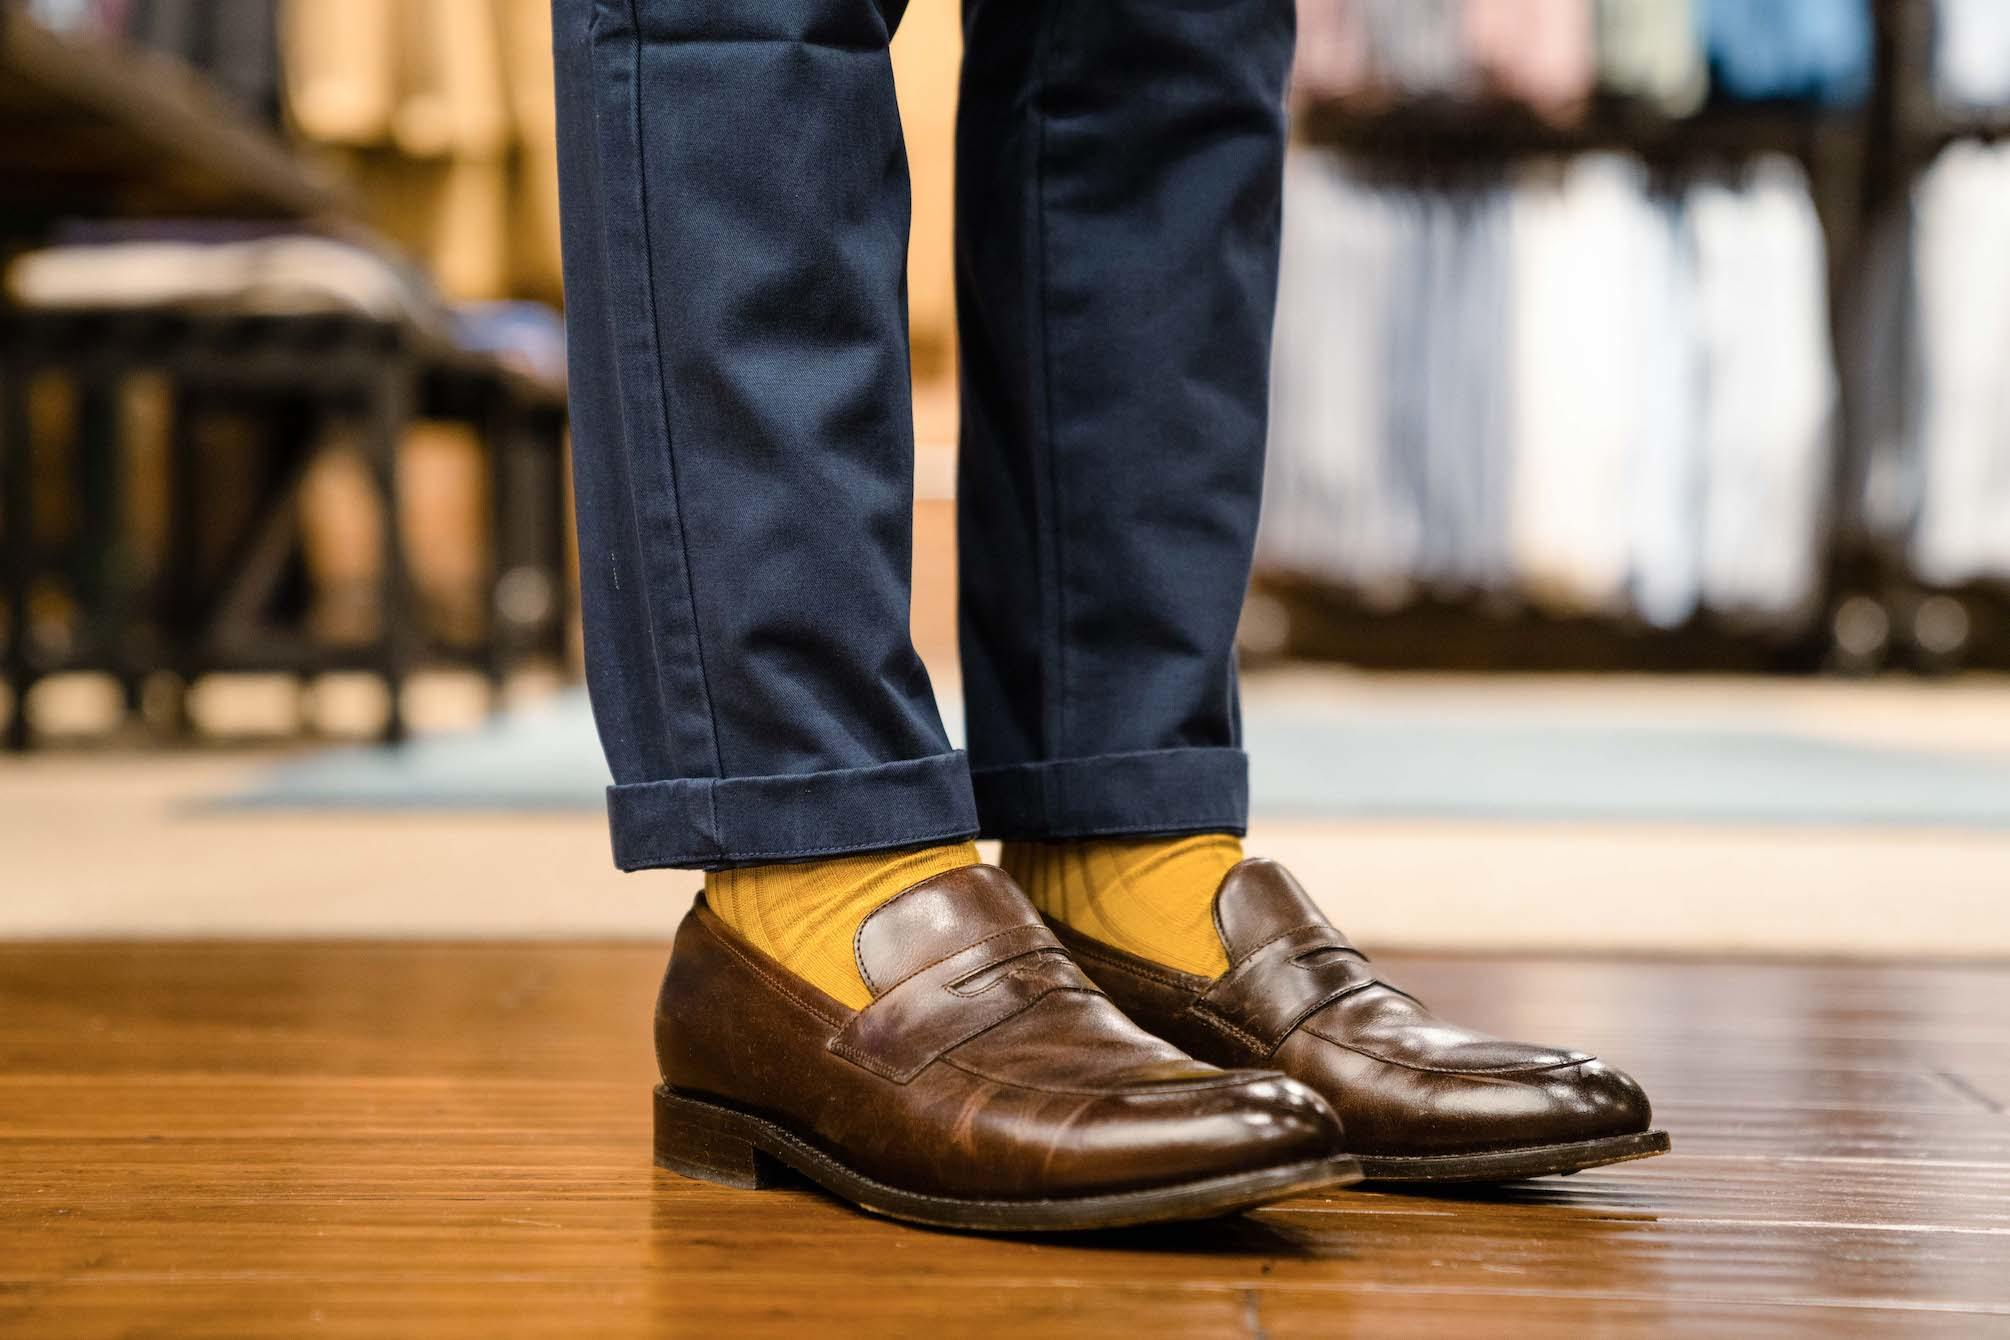 Cuffed chinos with loafers